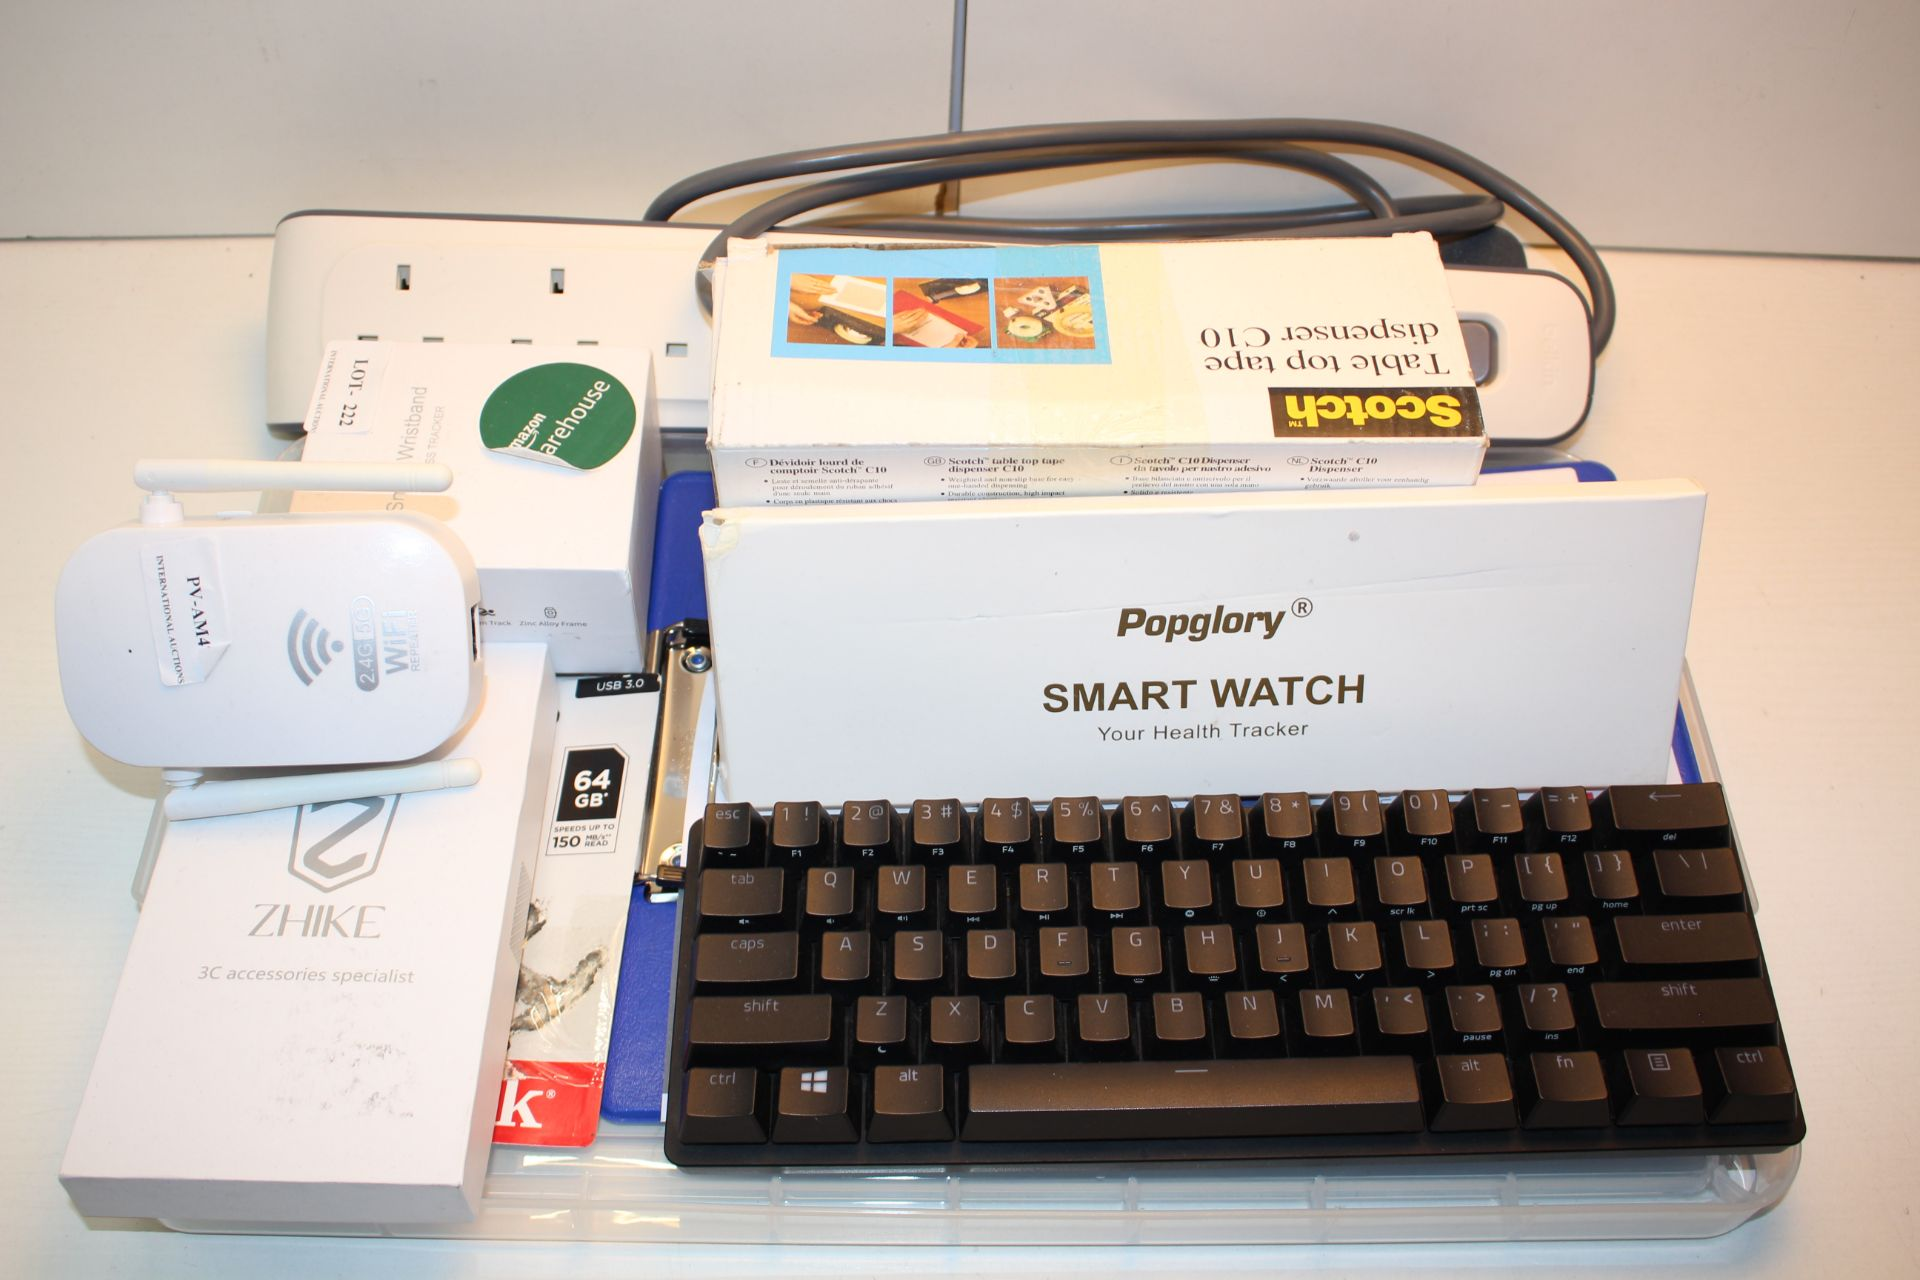 9X ASSORTED ITEMS TO INCLUDE KEYBOARD, SMART WATCH, WI-FI REPEATER & OTHER (IMAGE DEPICTS STOCK)